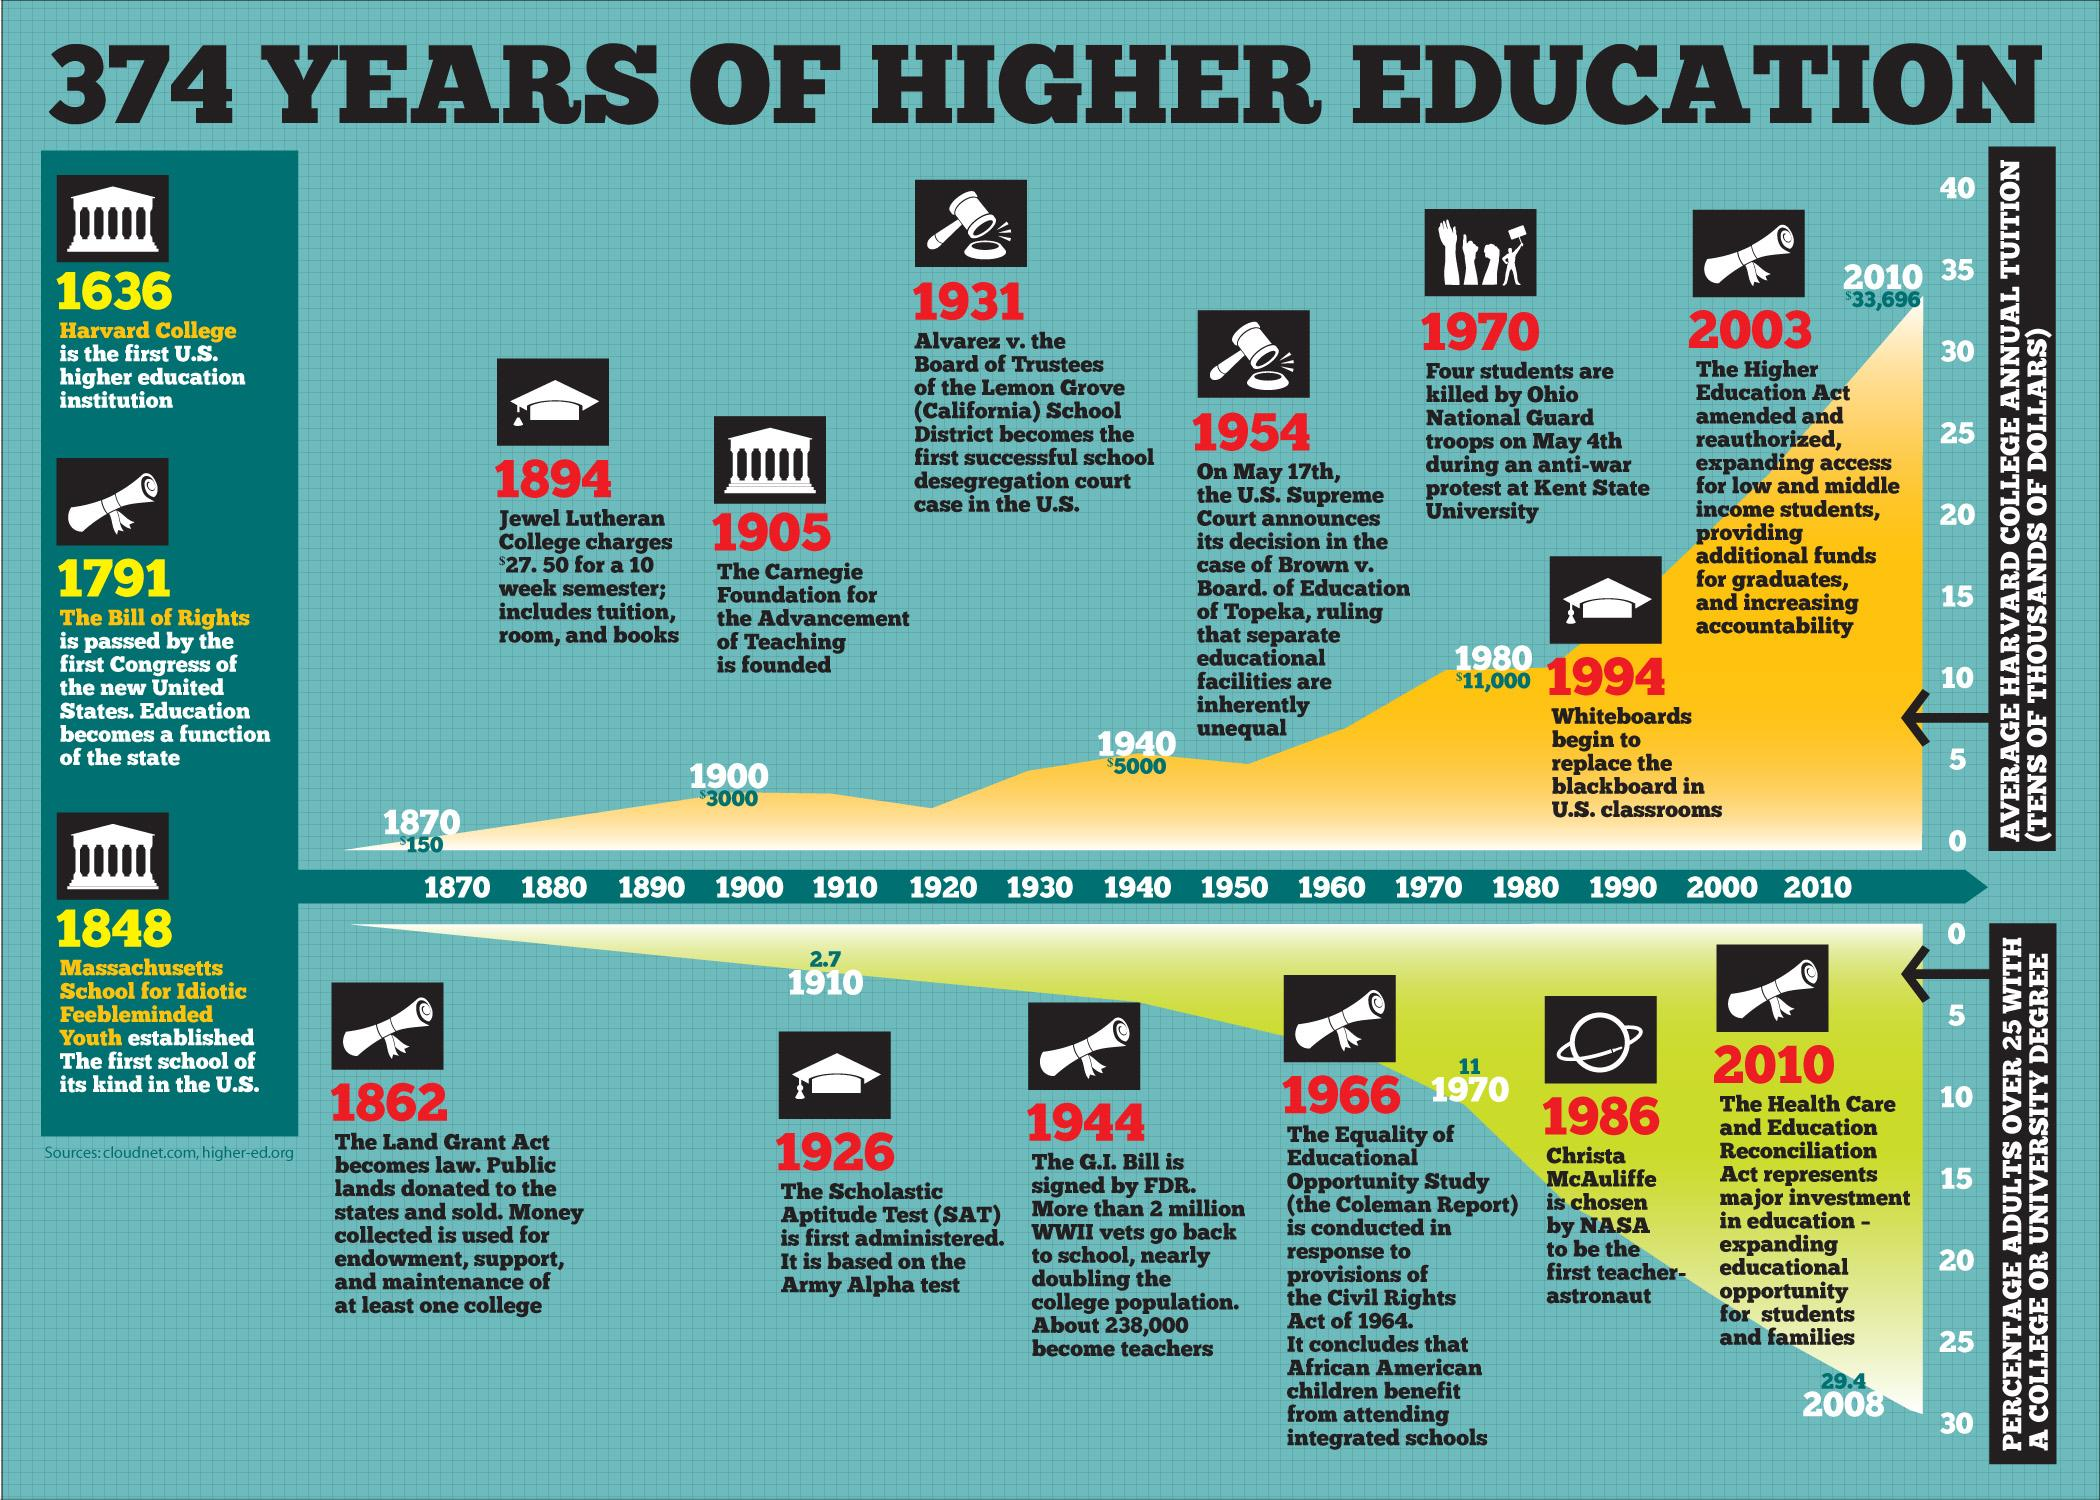 A Timeline: 374 Years of Higher Education |